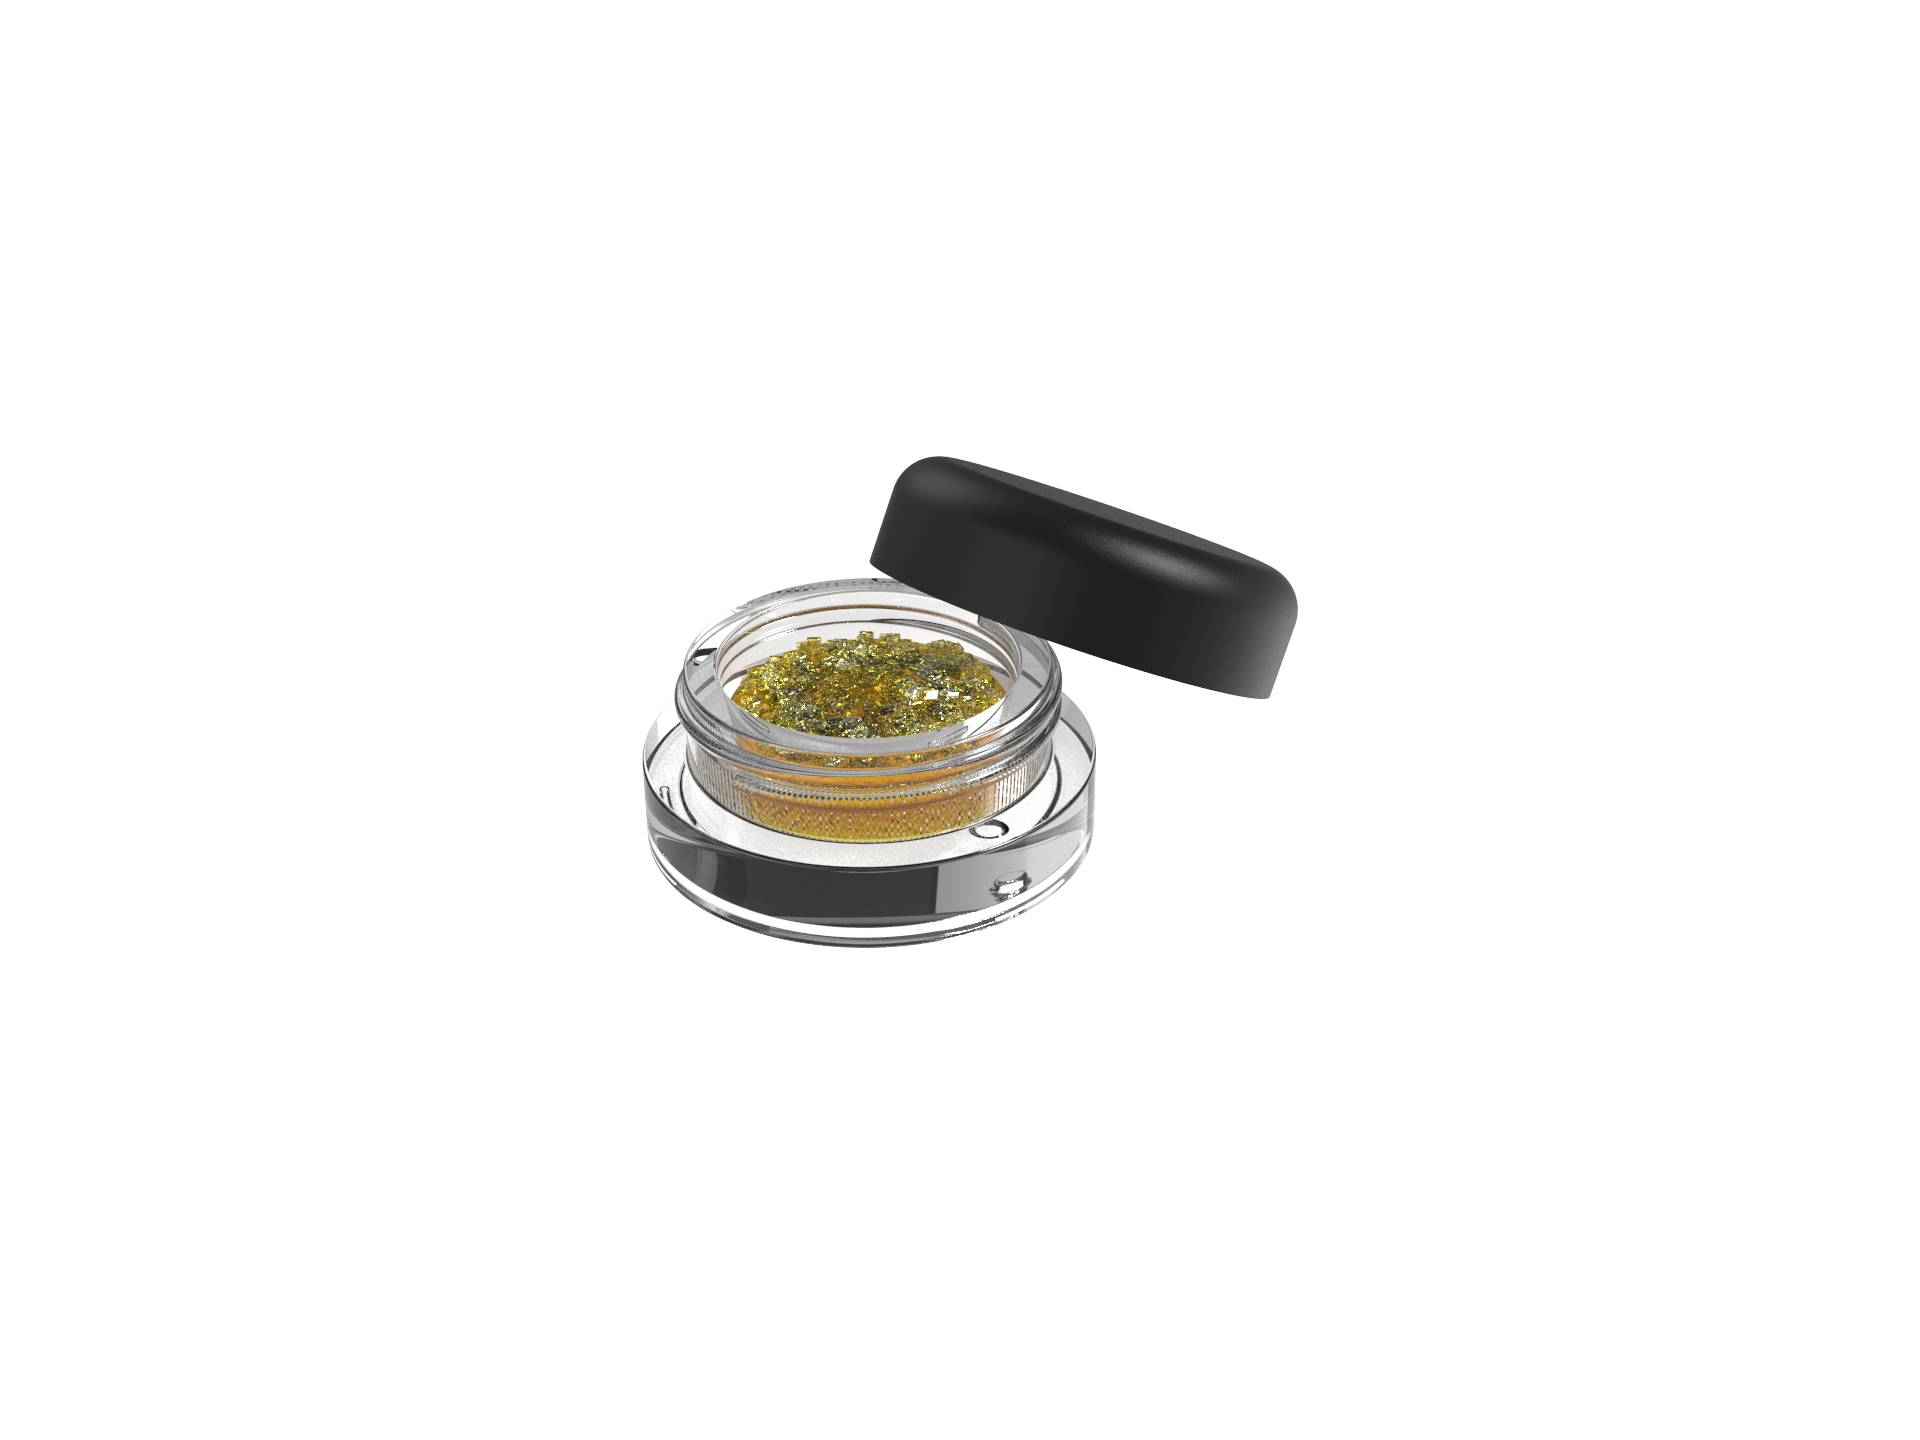 pollen-gear-lopro-glass-concentrate-jars